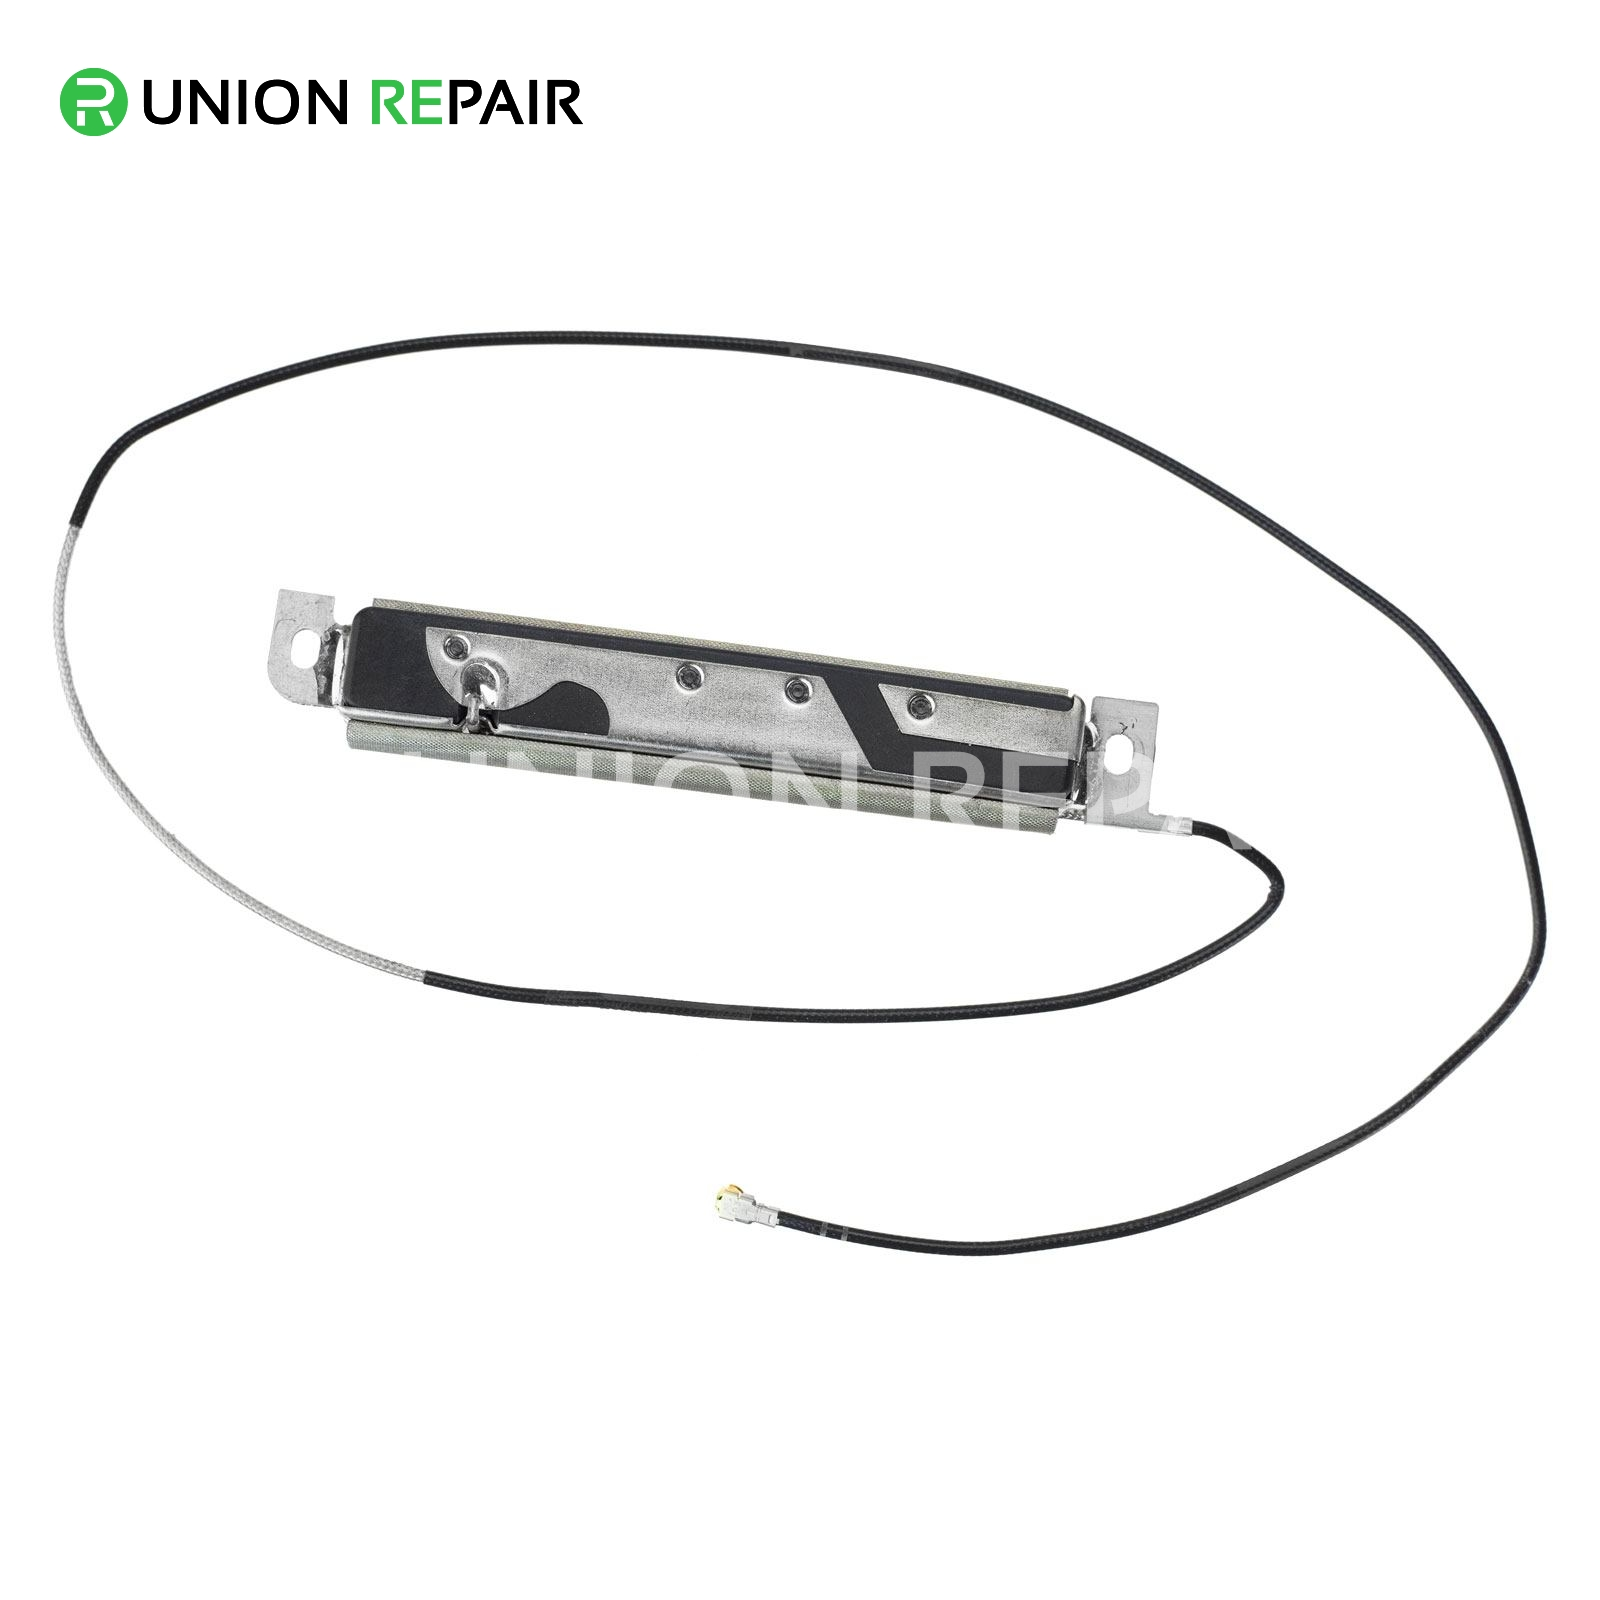 """Left AirPort Antenna Cable for iMac 21.5"""" A1311 (Mid 2011 - Late 2011)"""